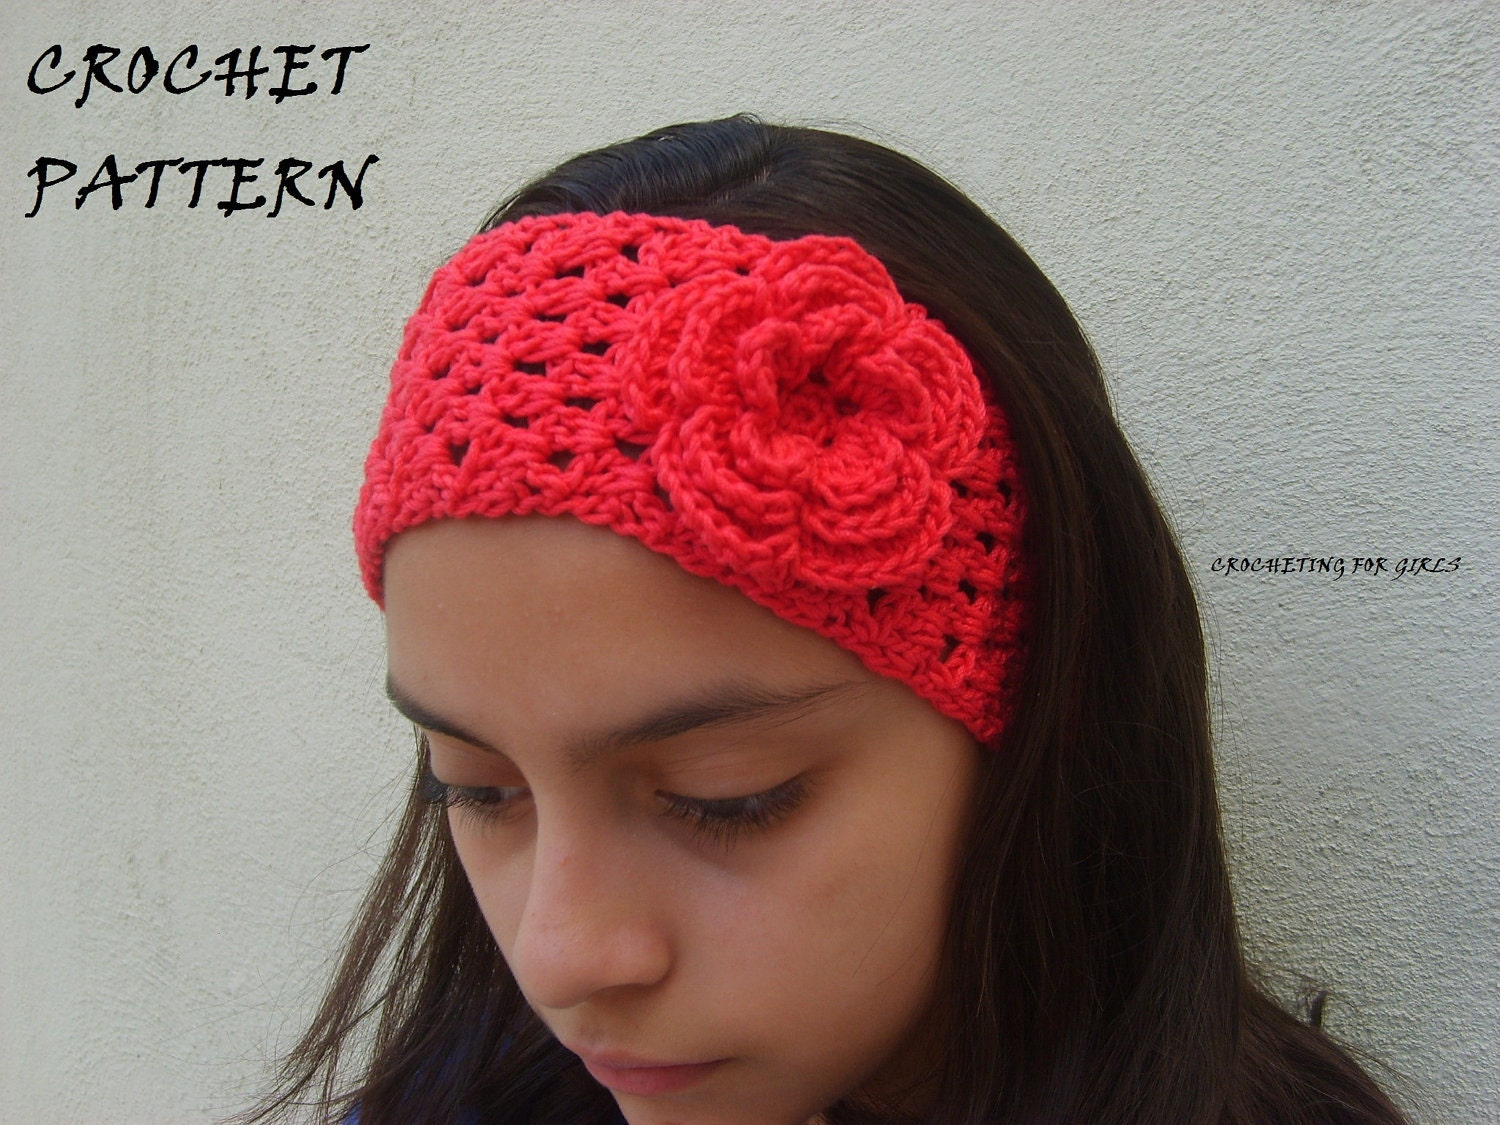 Crochet Wide Headband With Flower Free Pattern : Crocheted headband/headwrap with flower by crochetingforgirls